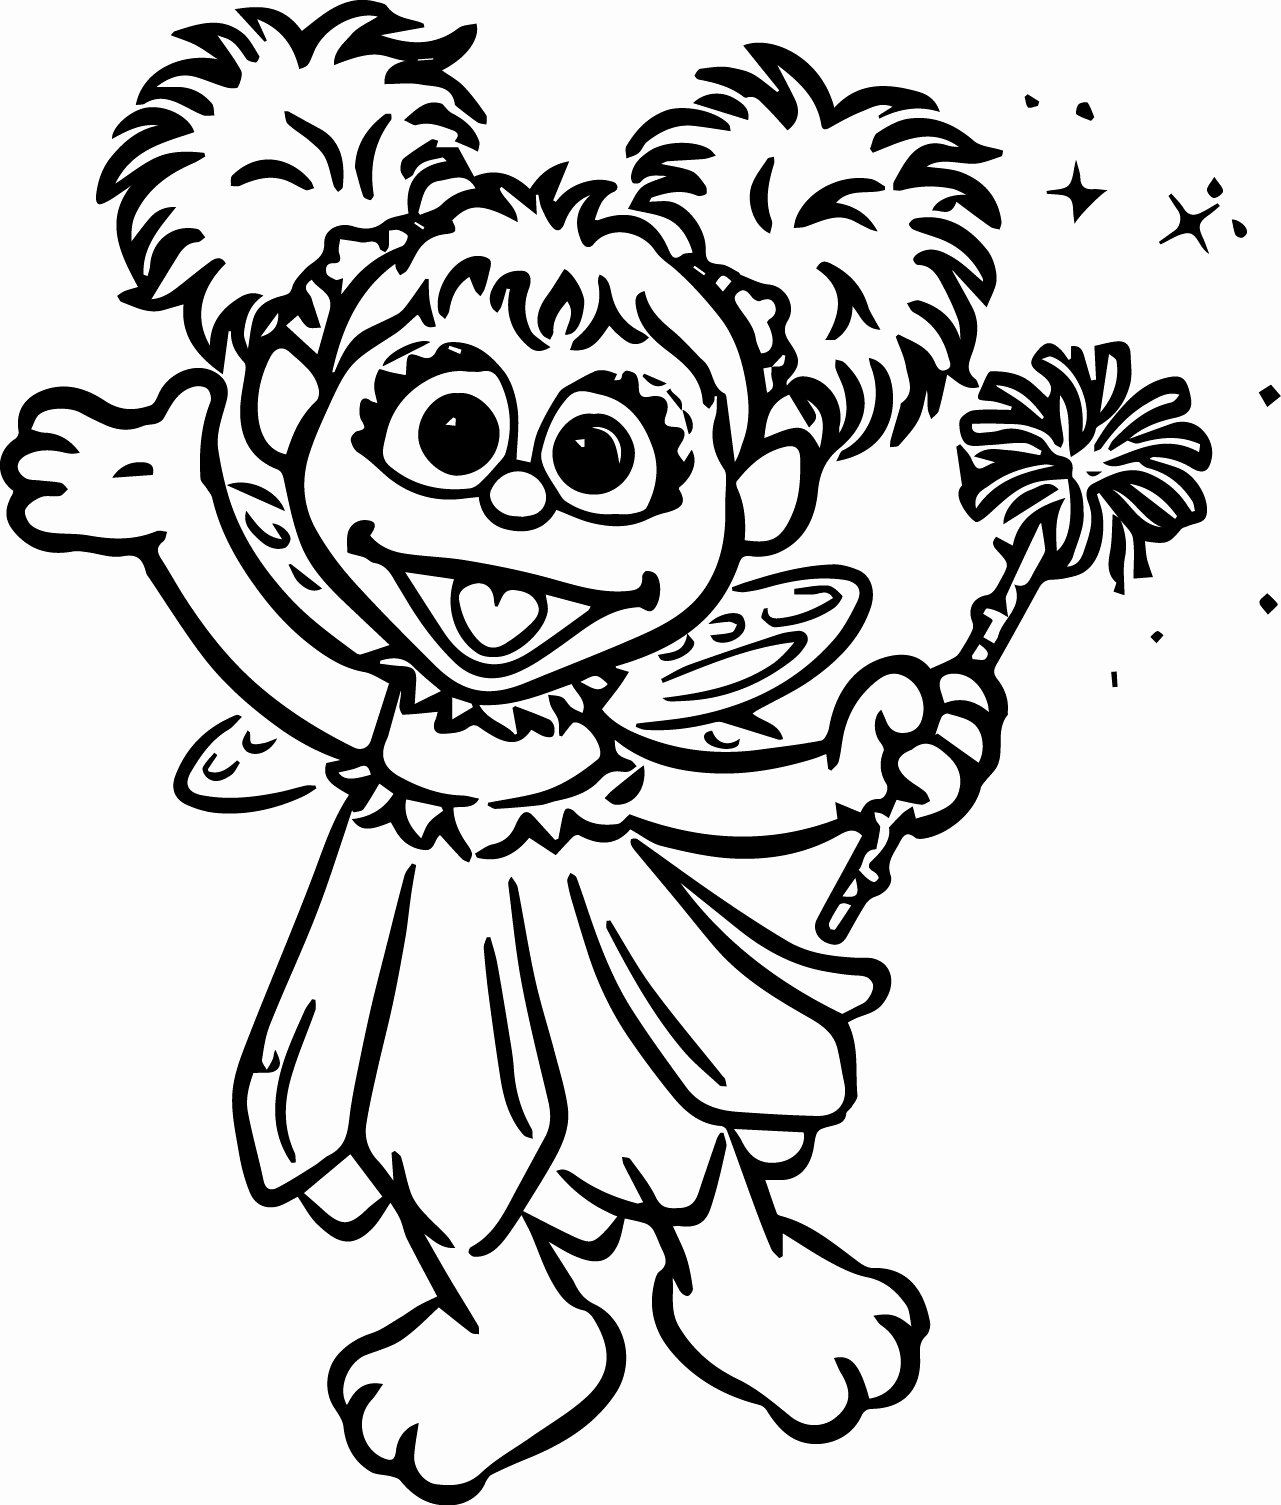 Elmo Halloween Coloring Pages Fresh Oscar The Grouch Coloring Page At Getdrawings Sesame Street Coloring Pages Elmo Coloring Pages Halloween Coloring Pages